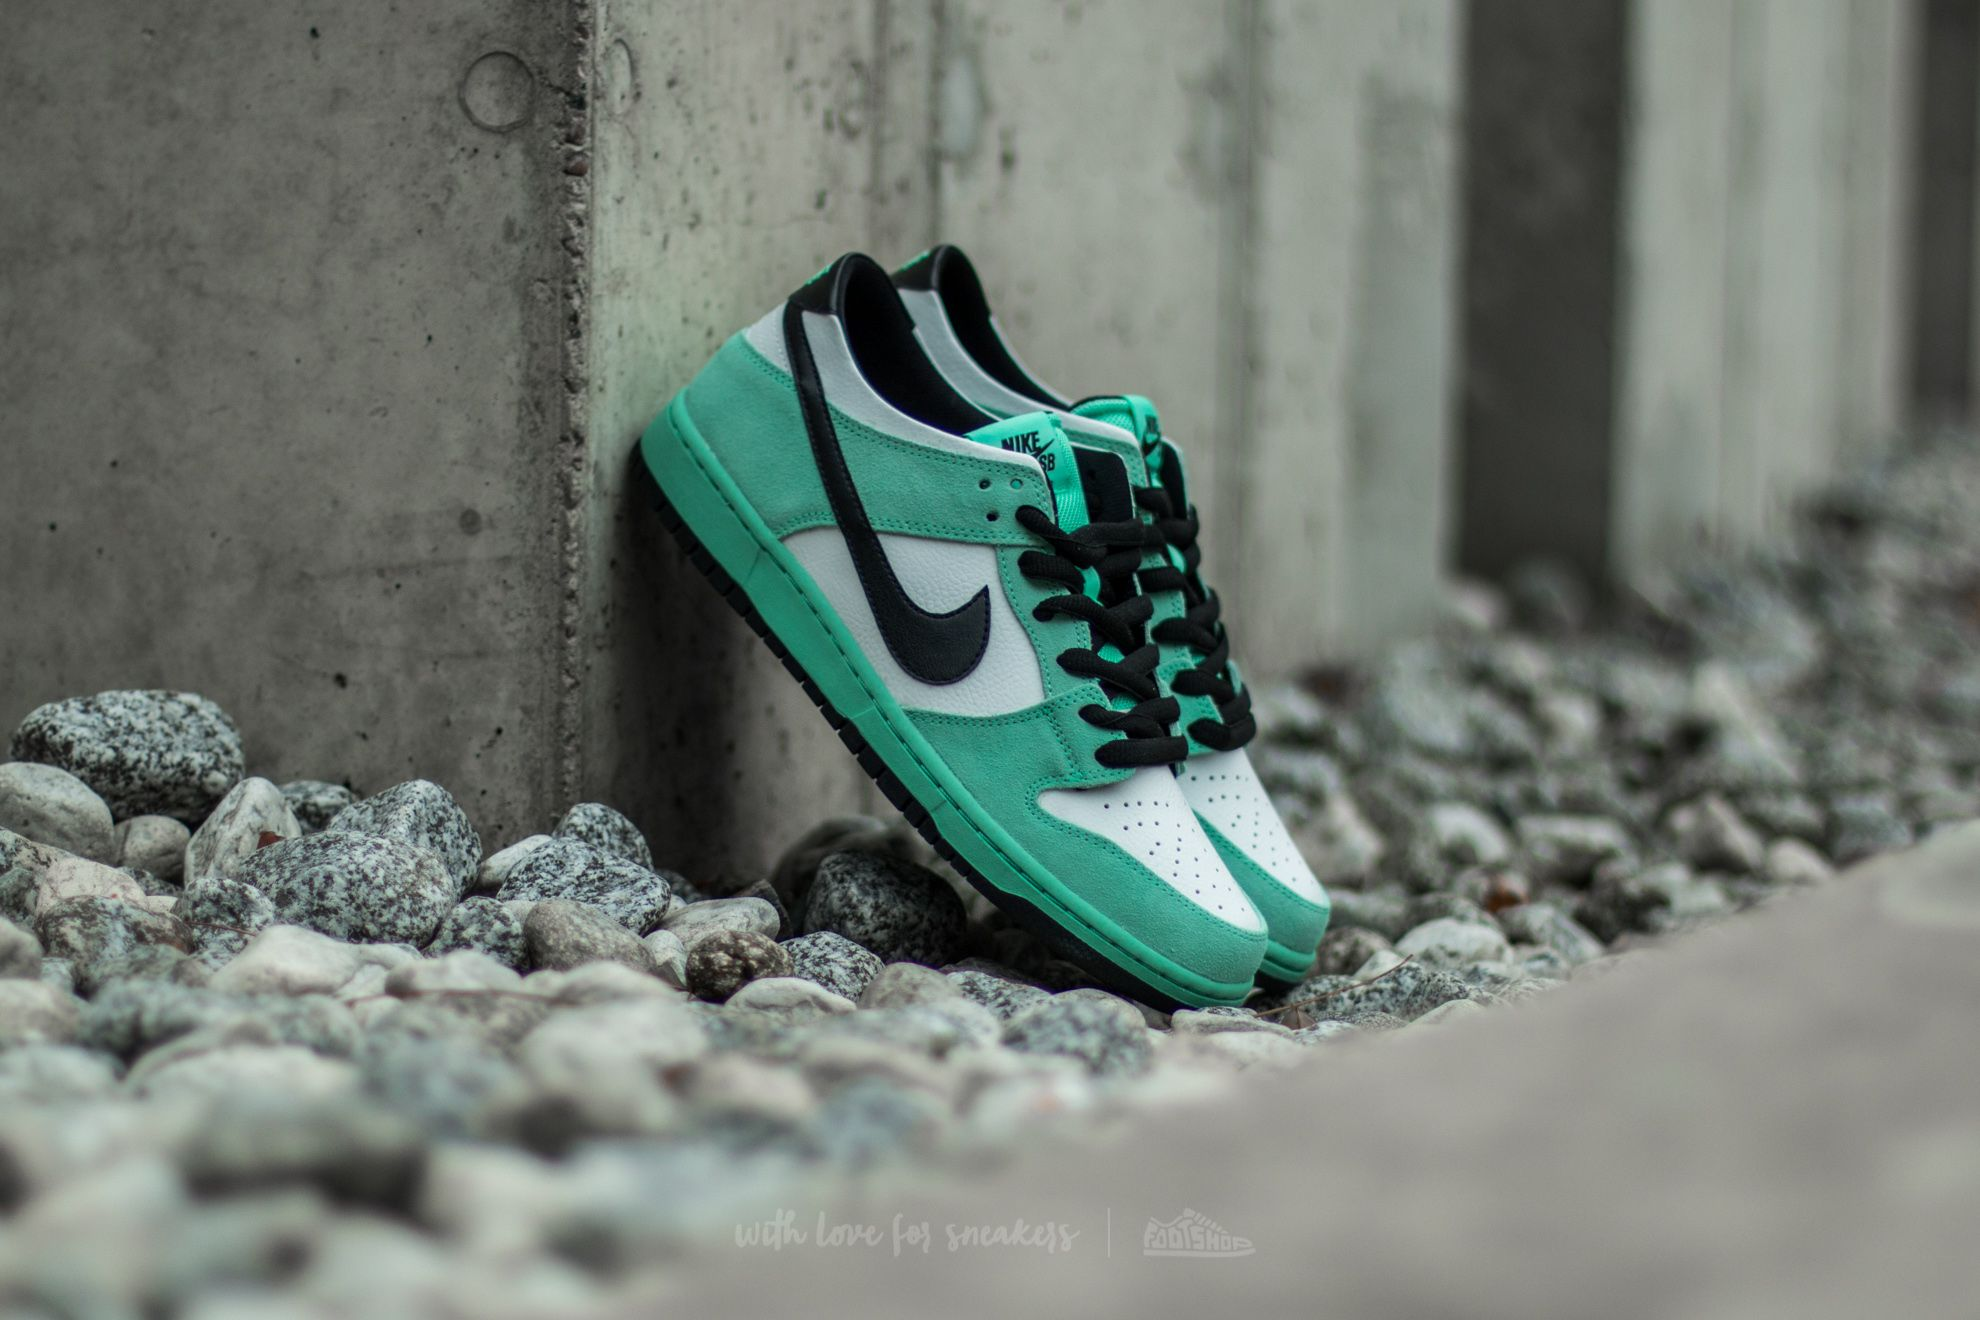 e3610f4b7529 Nike Dunk Low Pro Ishod Wair. Green Glow  Black-Summit White